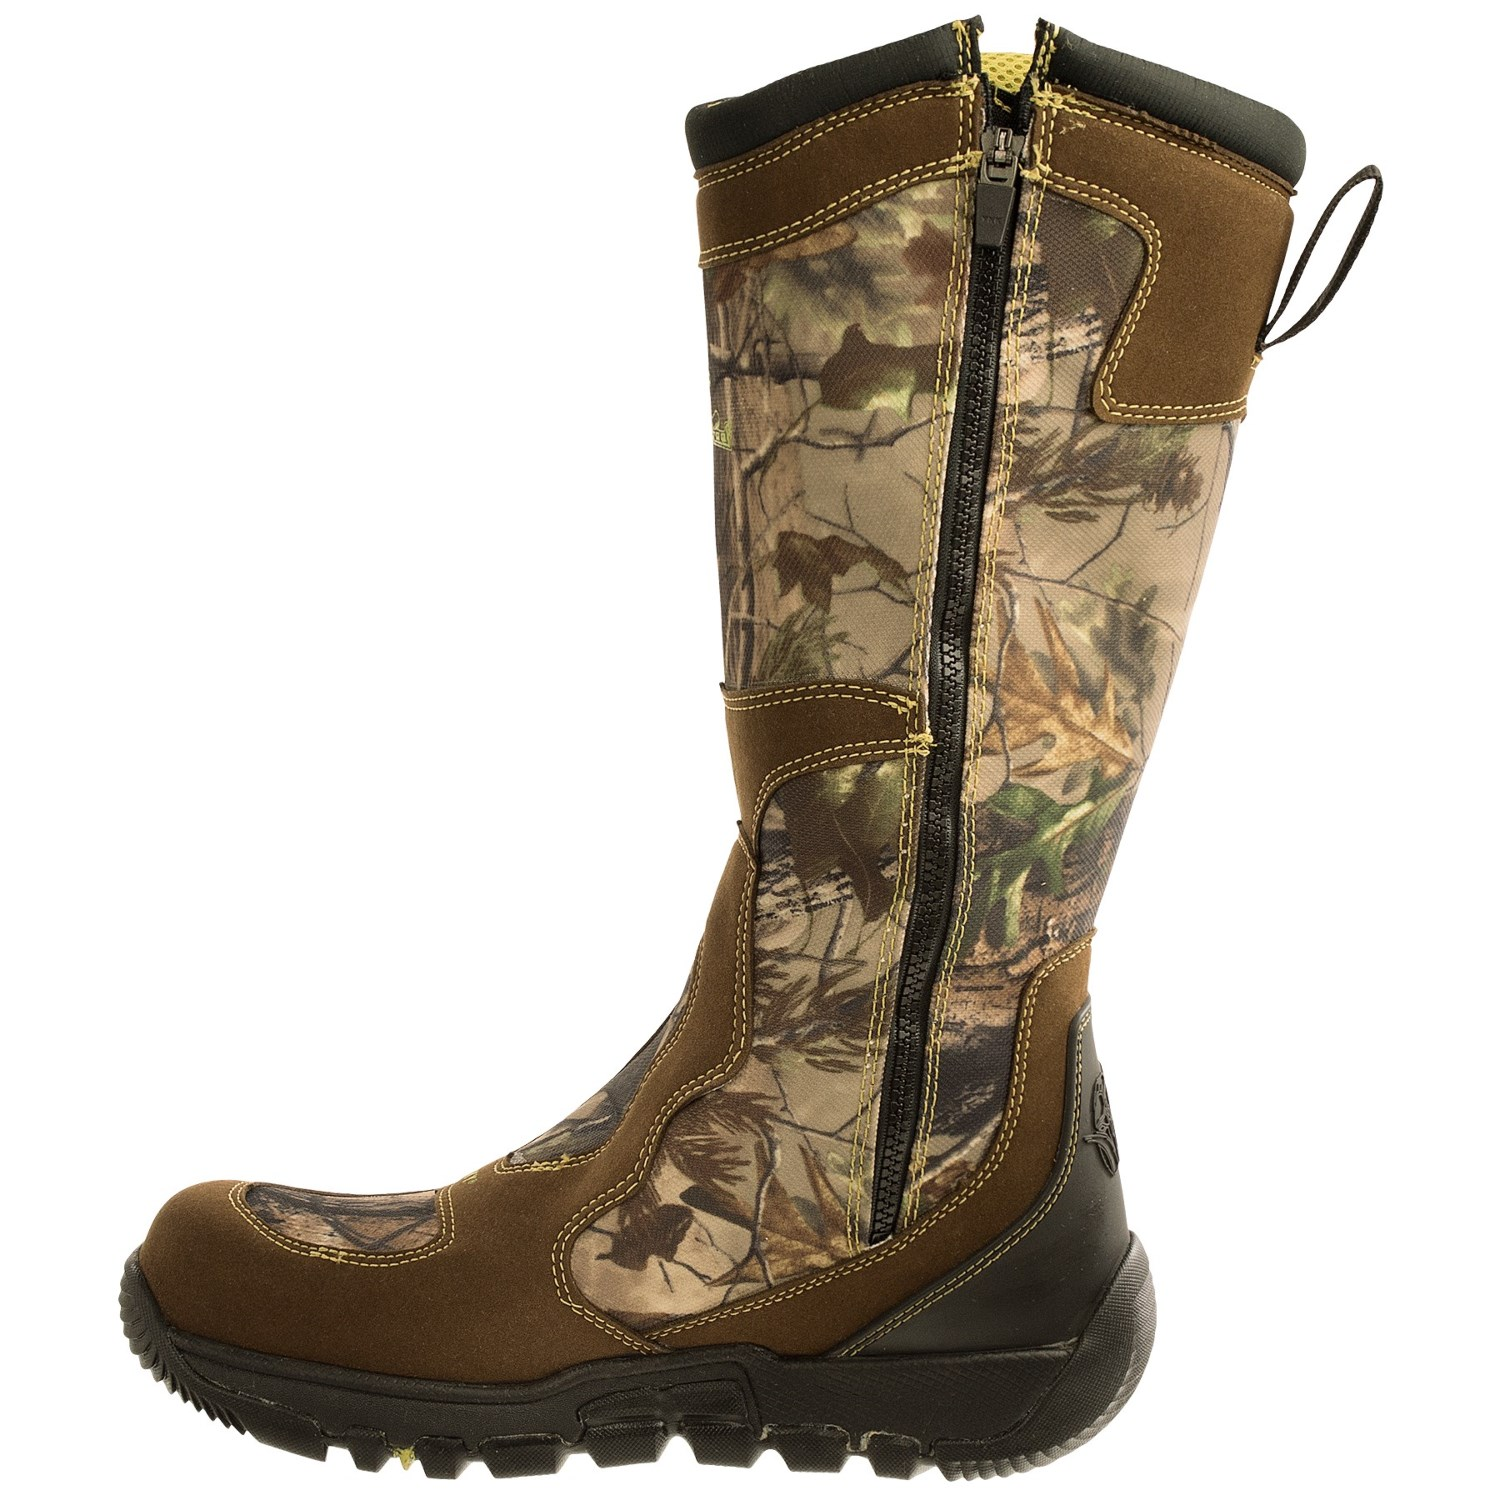 rocky athletic mobility level 3 gore tex snake boots for men 8755t save 45. Black Bedroom Furniture Sets. Home Design Ideas